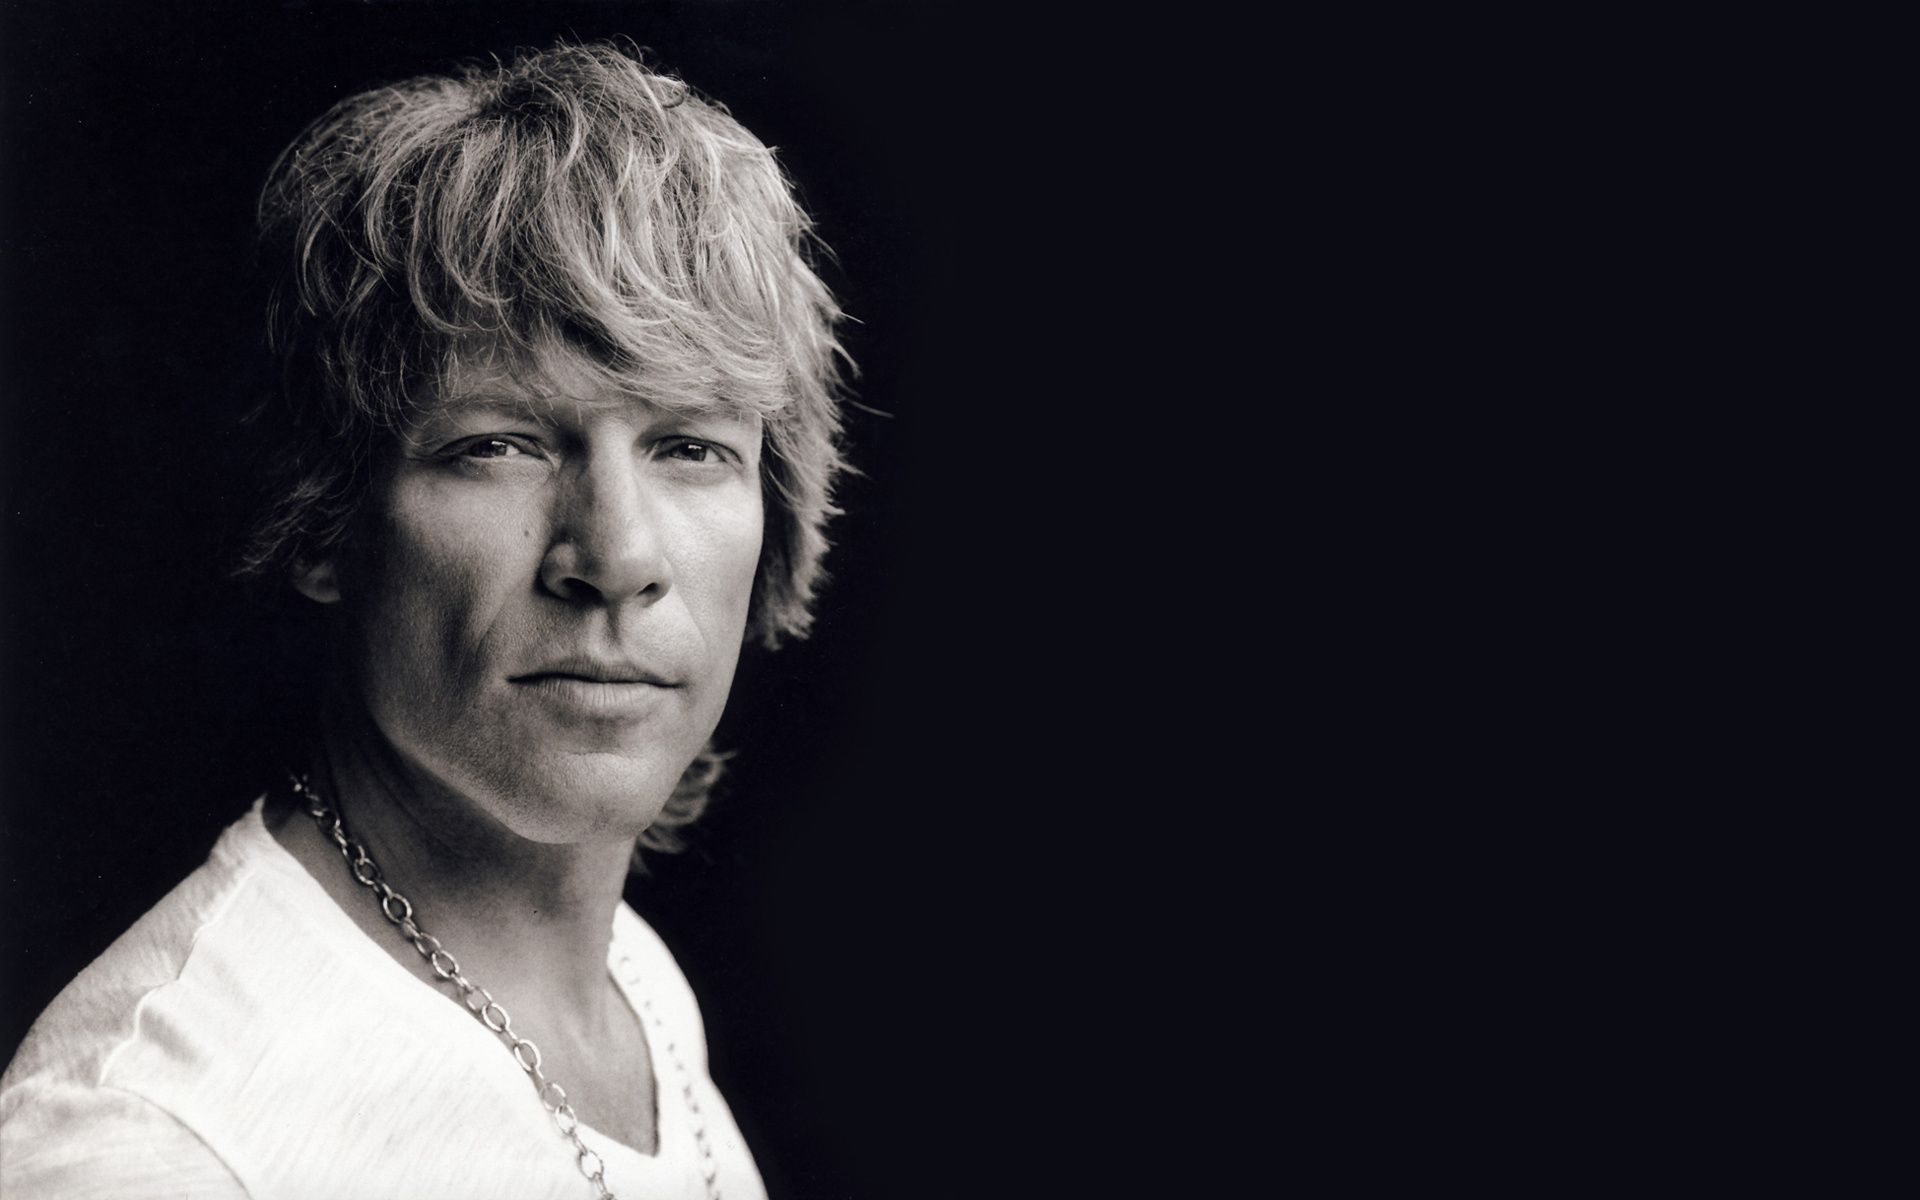 Jon Bon Jovi Wallpapers hd